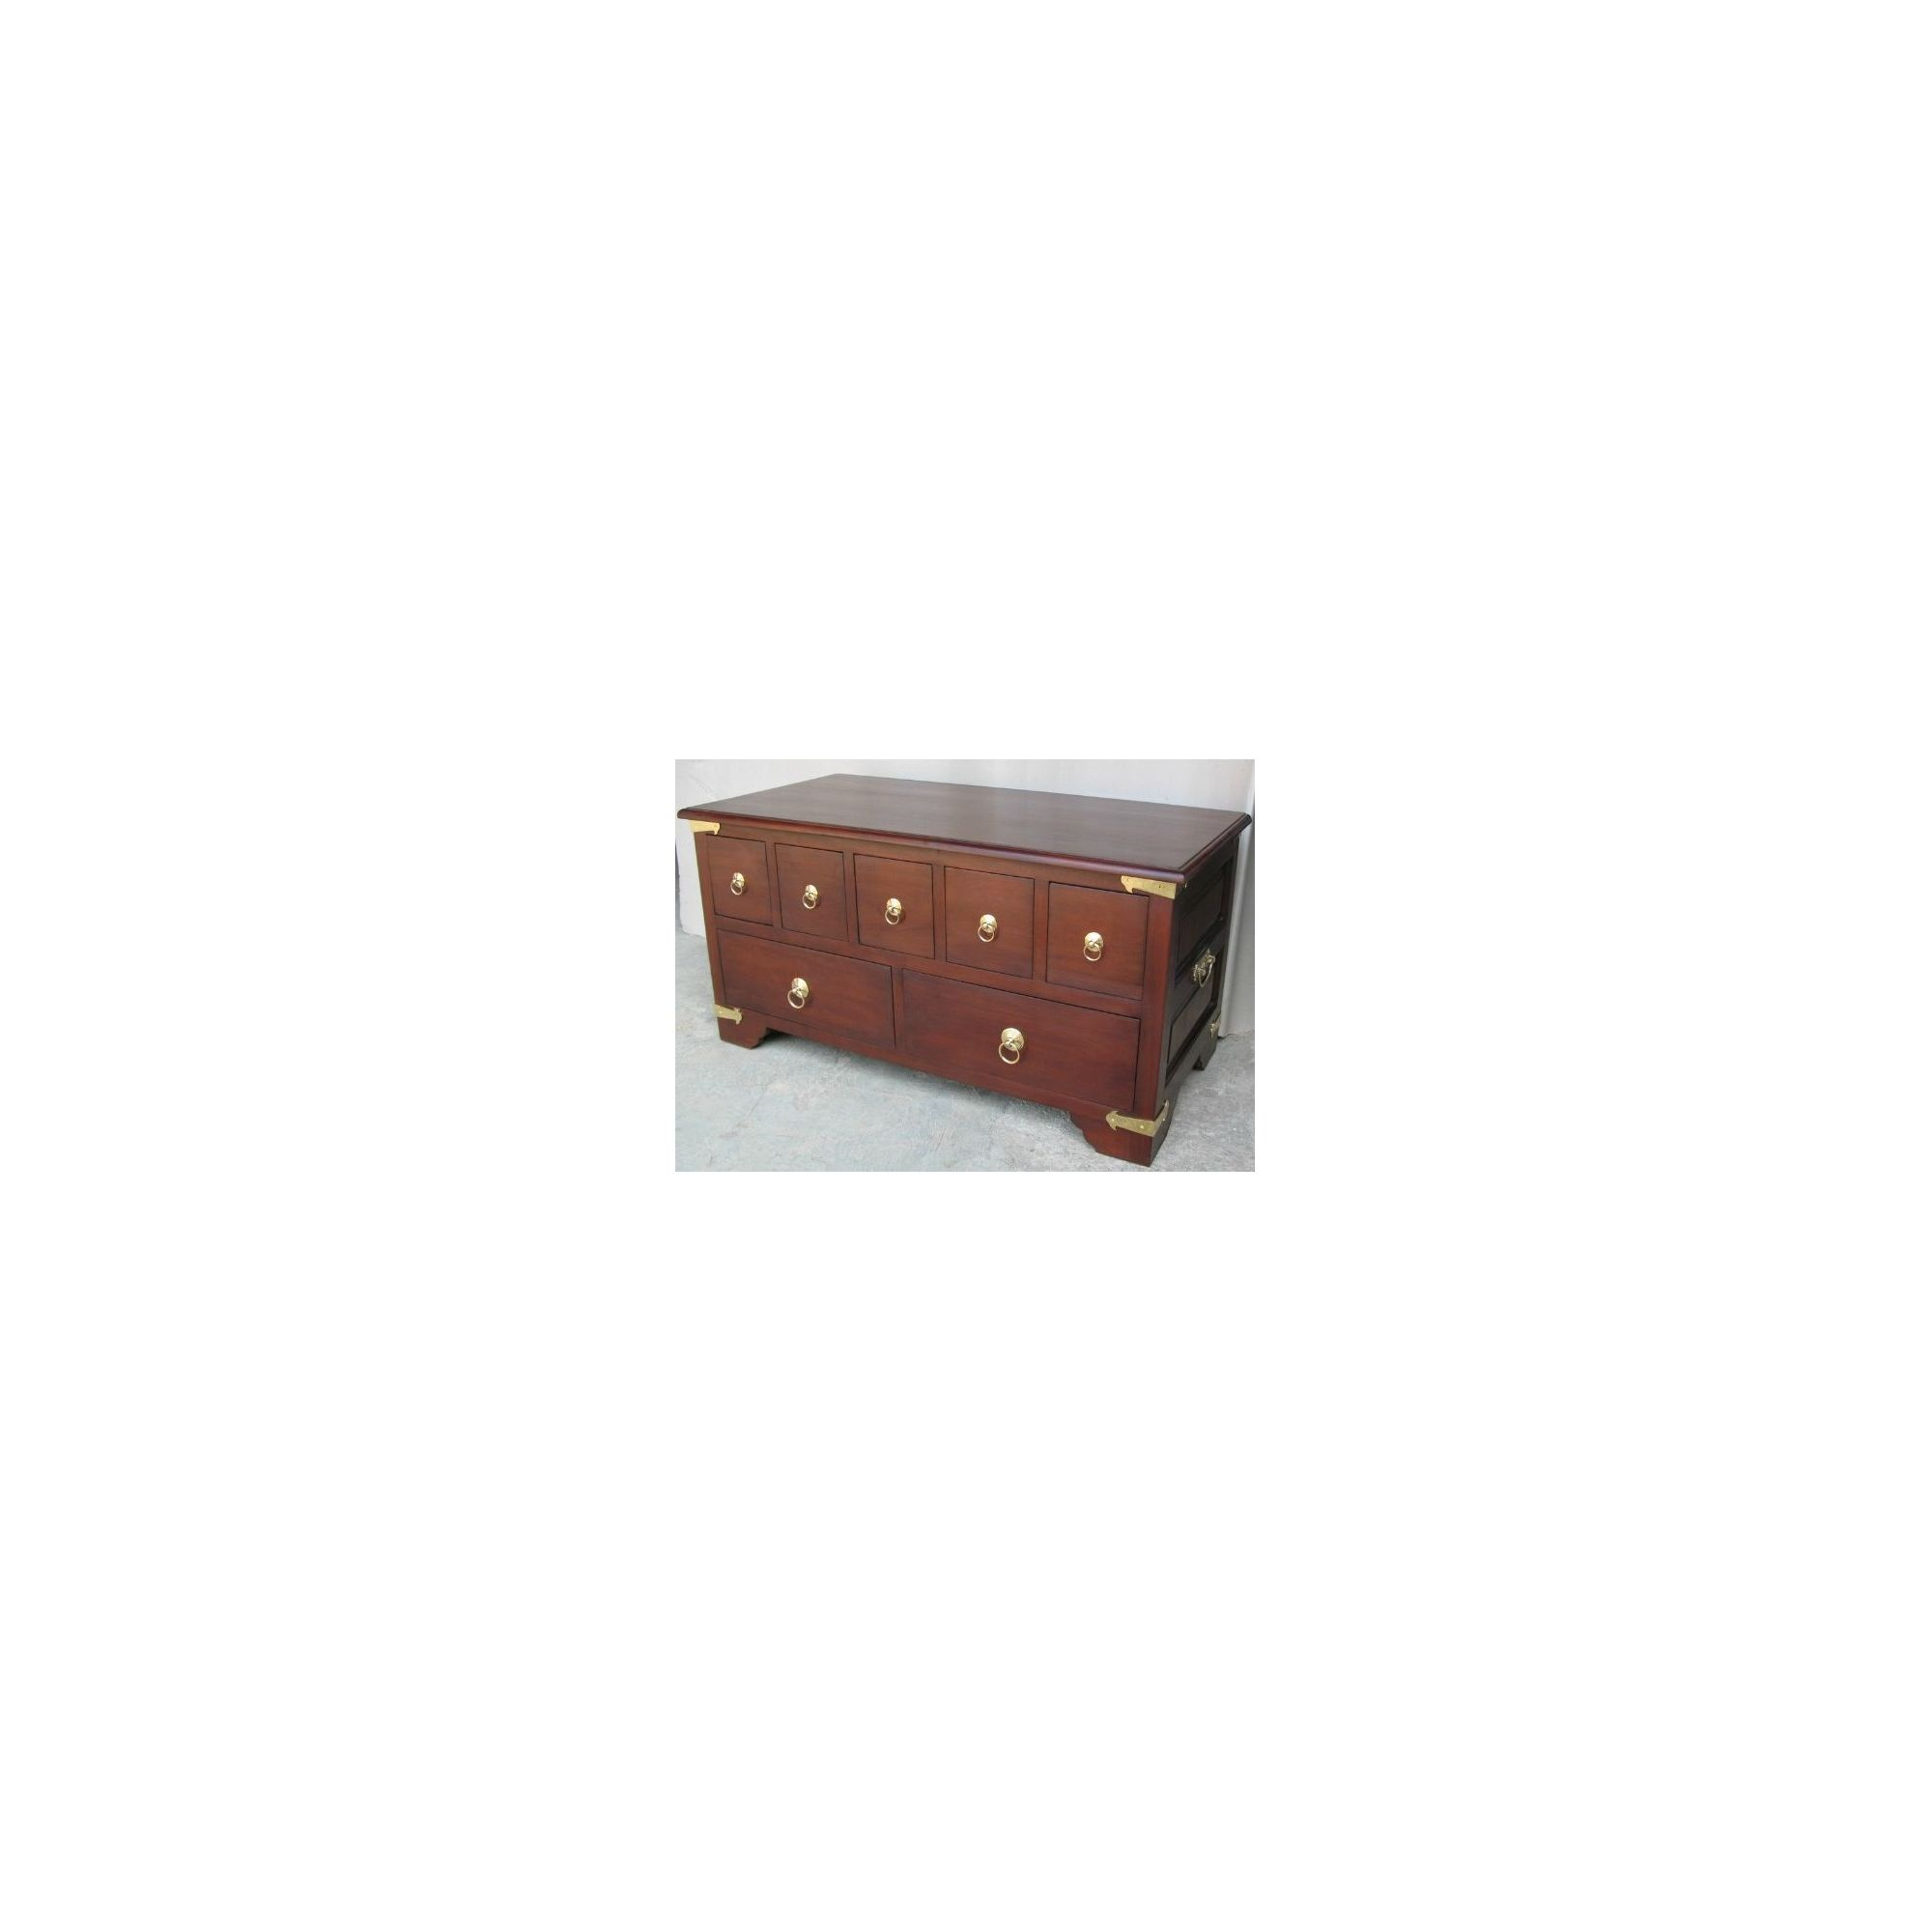 Lock stock and barrel Mahogany CD Coffee Table in Mahogany at Tesco Direct